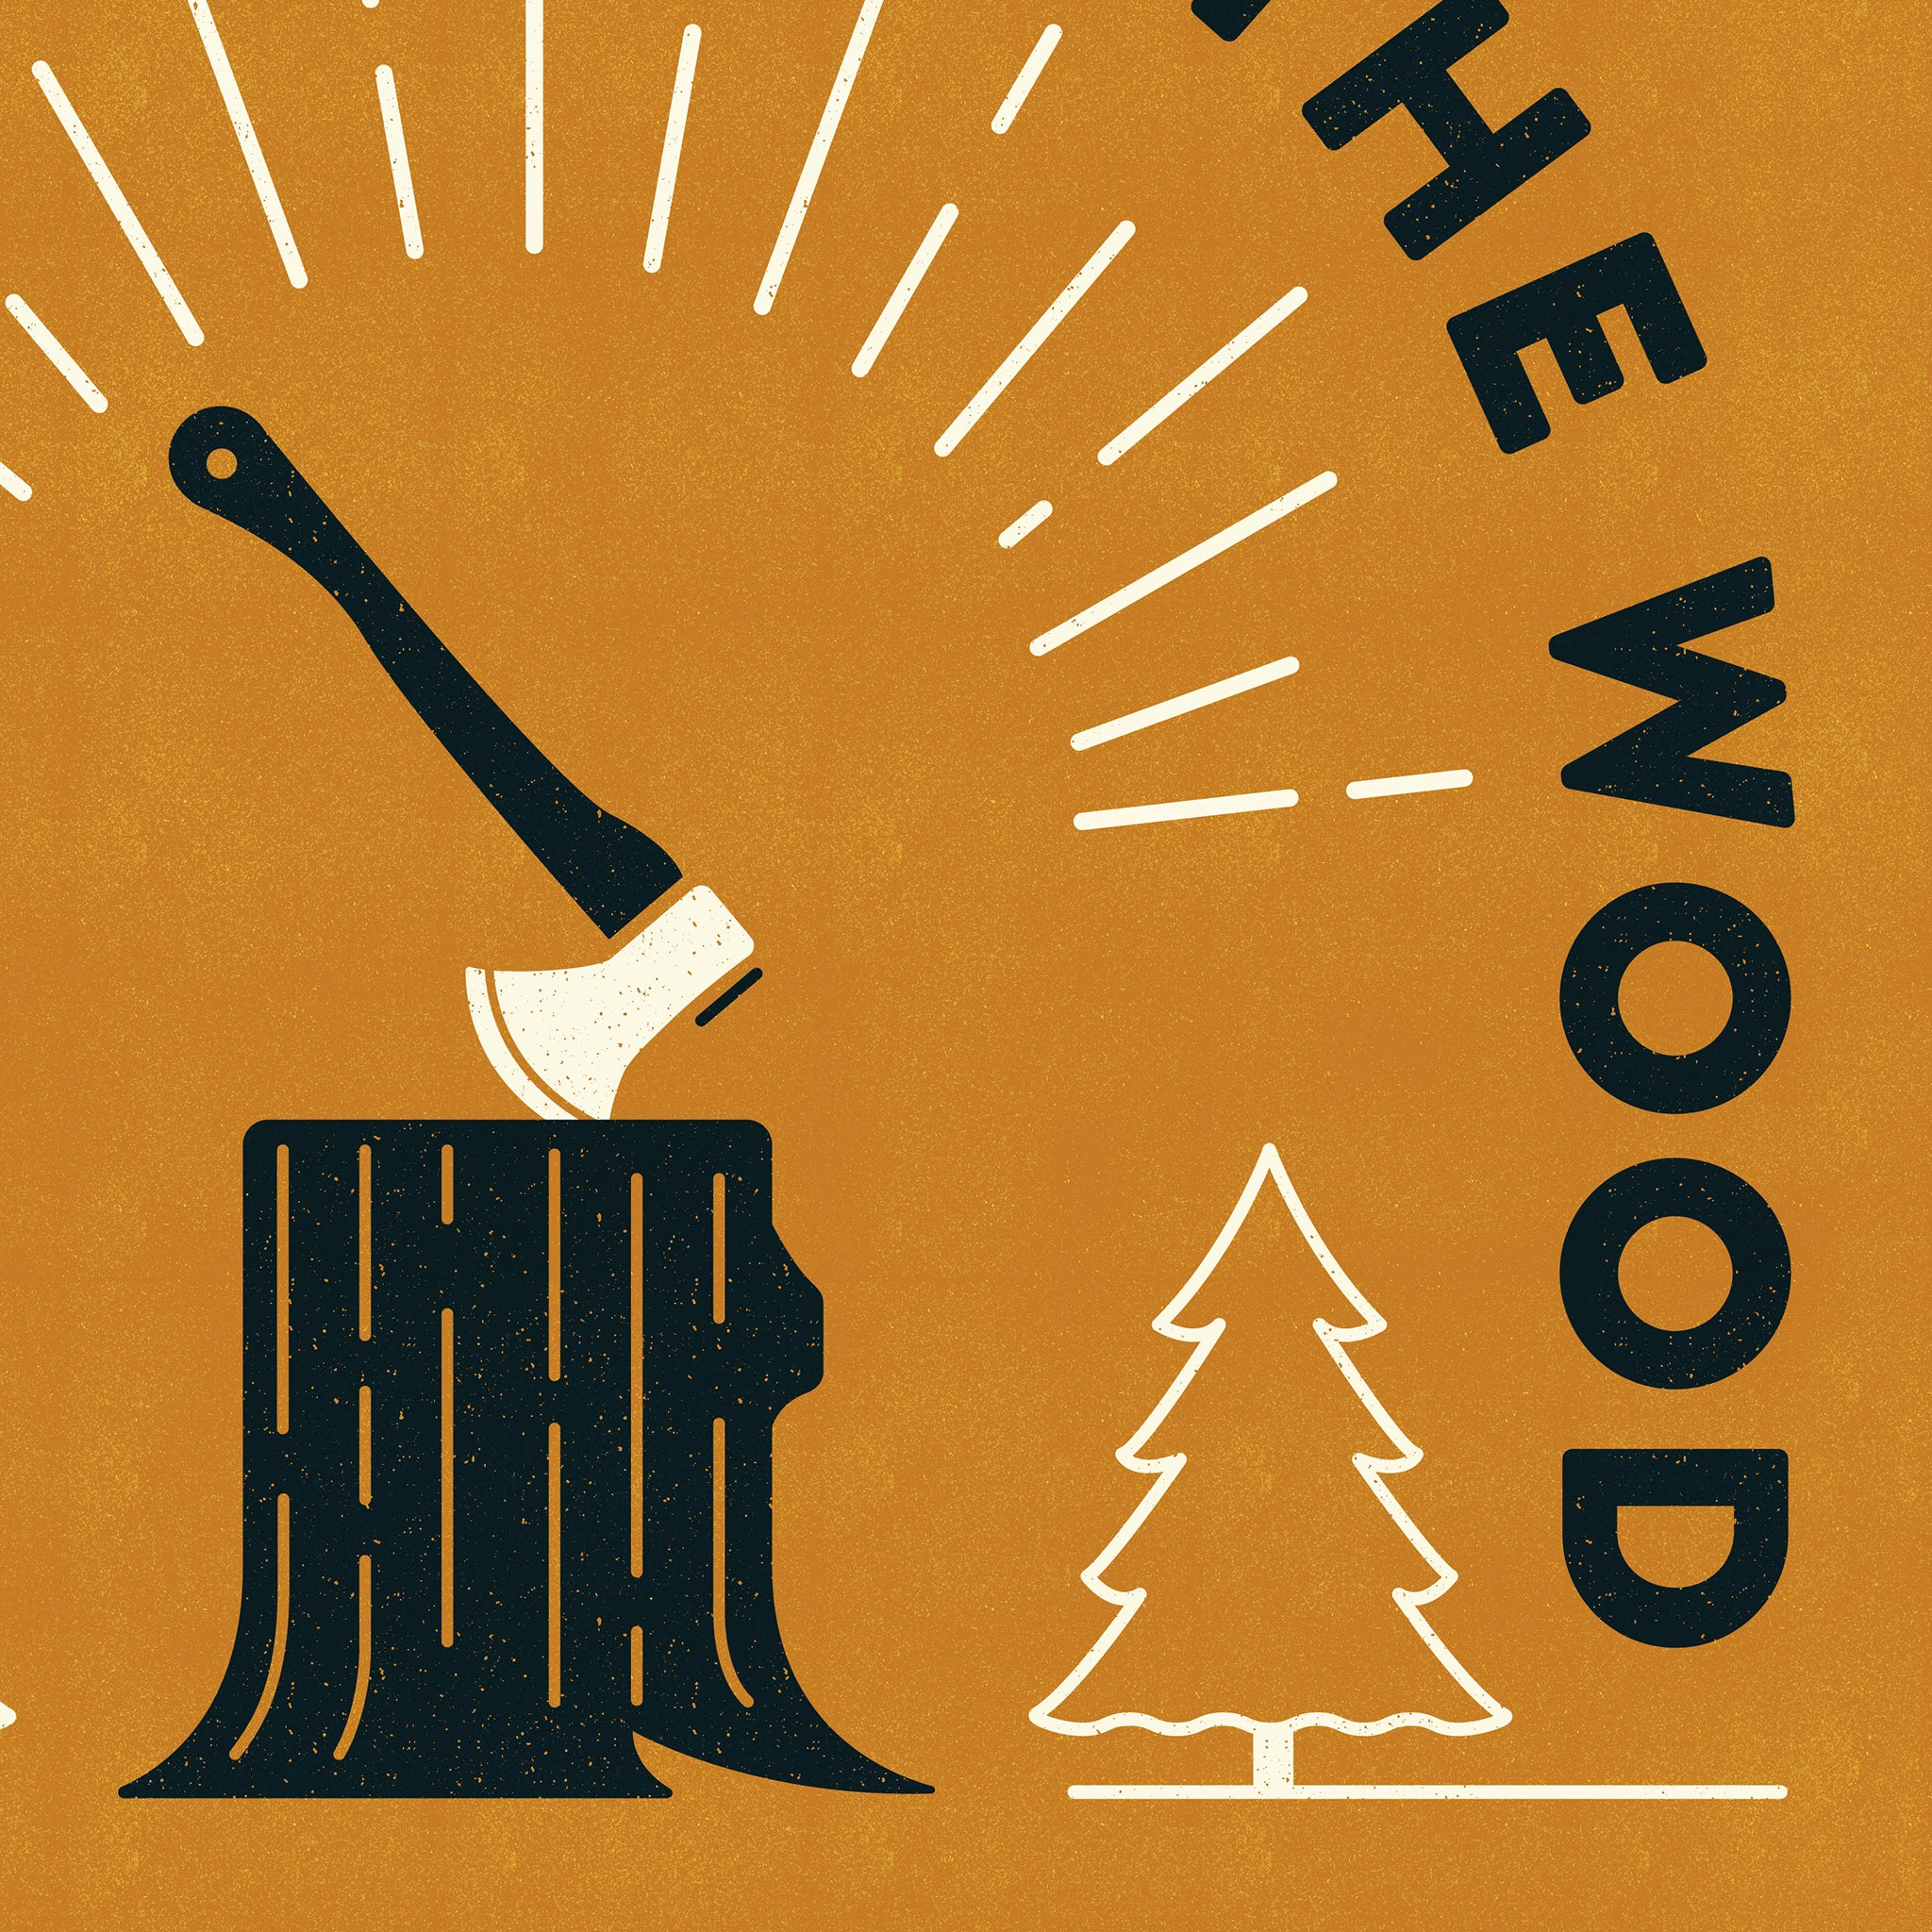 Those Who Chop The Wood - Gold